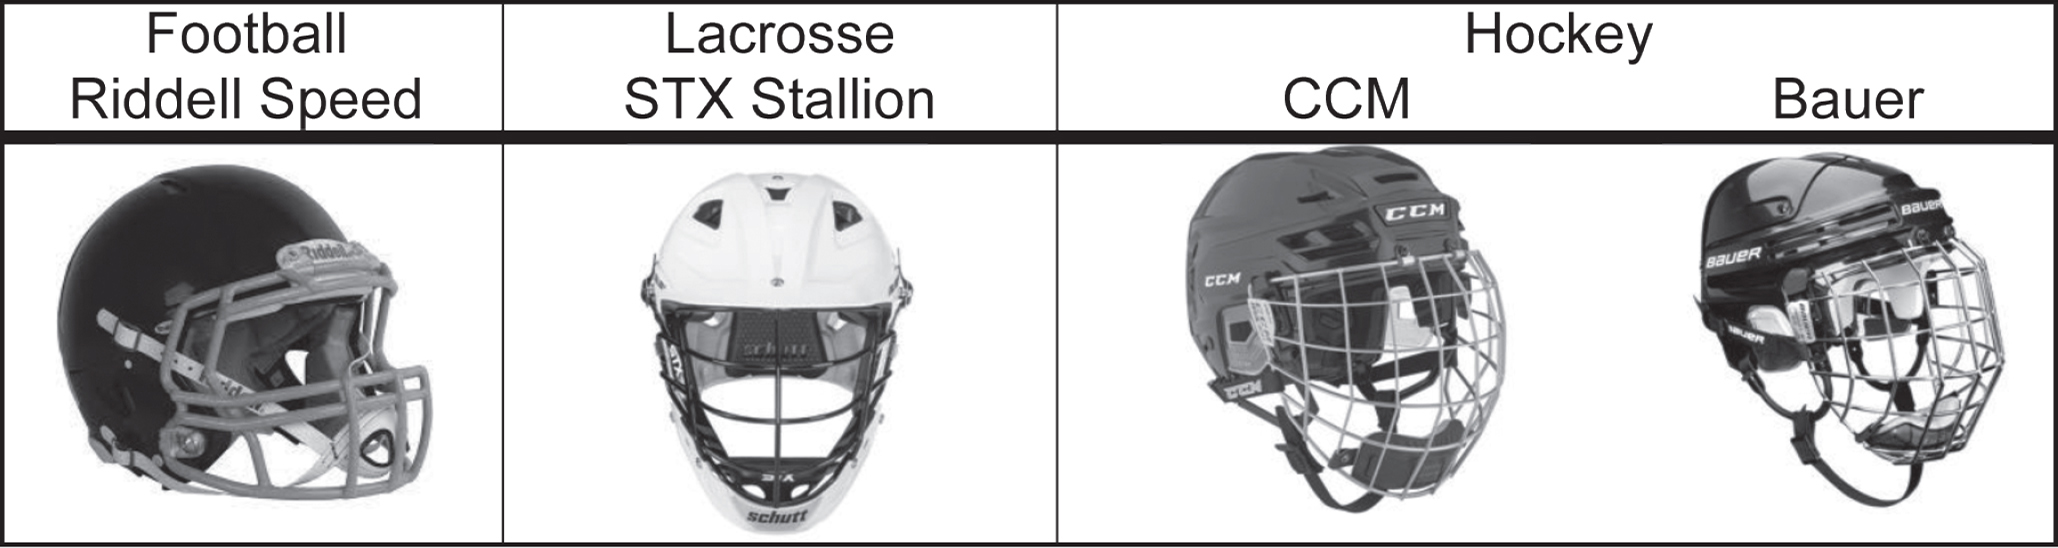 Helmet types employed in this study, manufactured by BRG Sports, STX, Sport Maksa, Inc., and Bauer Hockey, LLC, respectively.